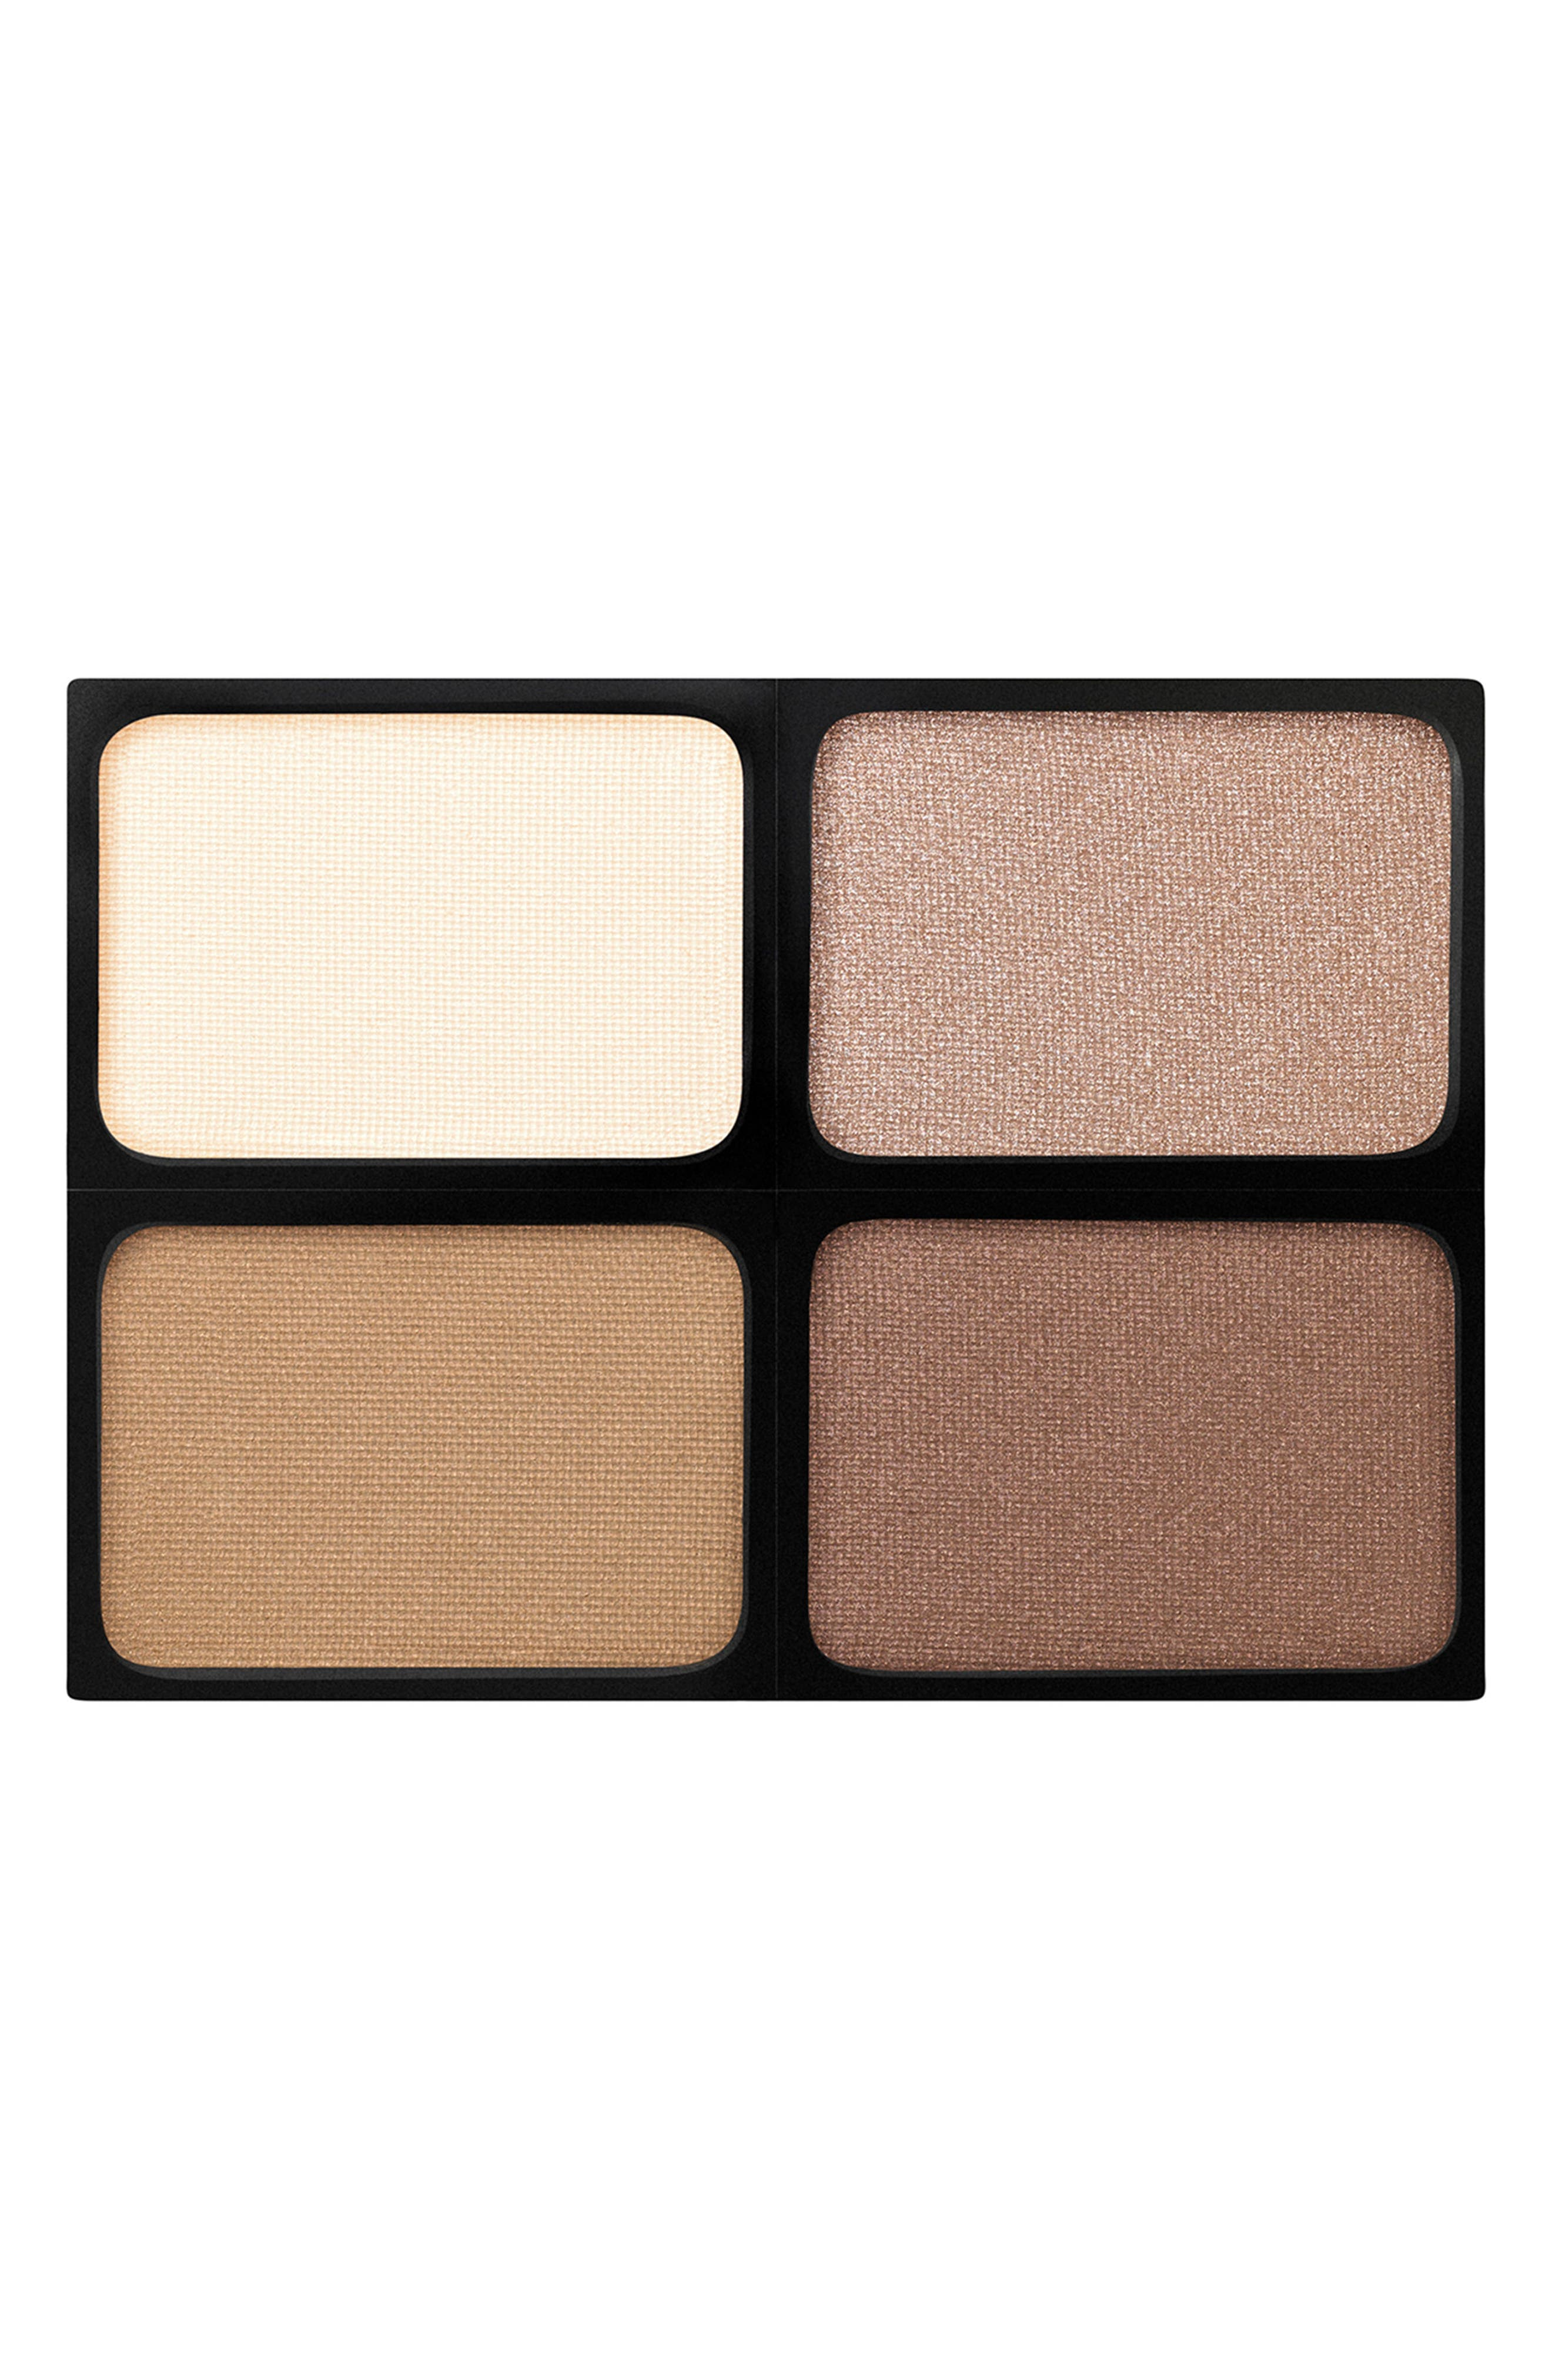 Maifanshi Mineral Eyeshadow Palette,                             Alternate thumbnail 2, color,                             01 Warm/Brown